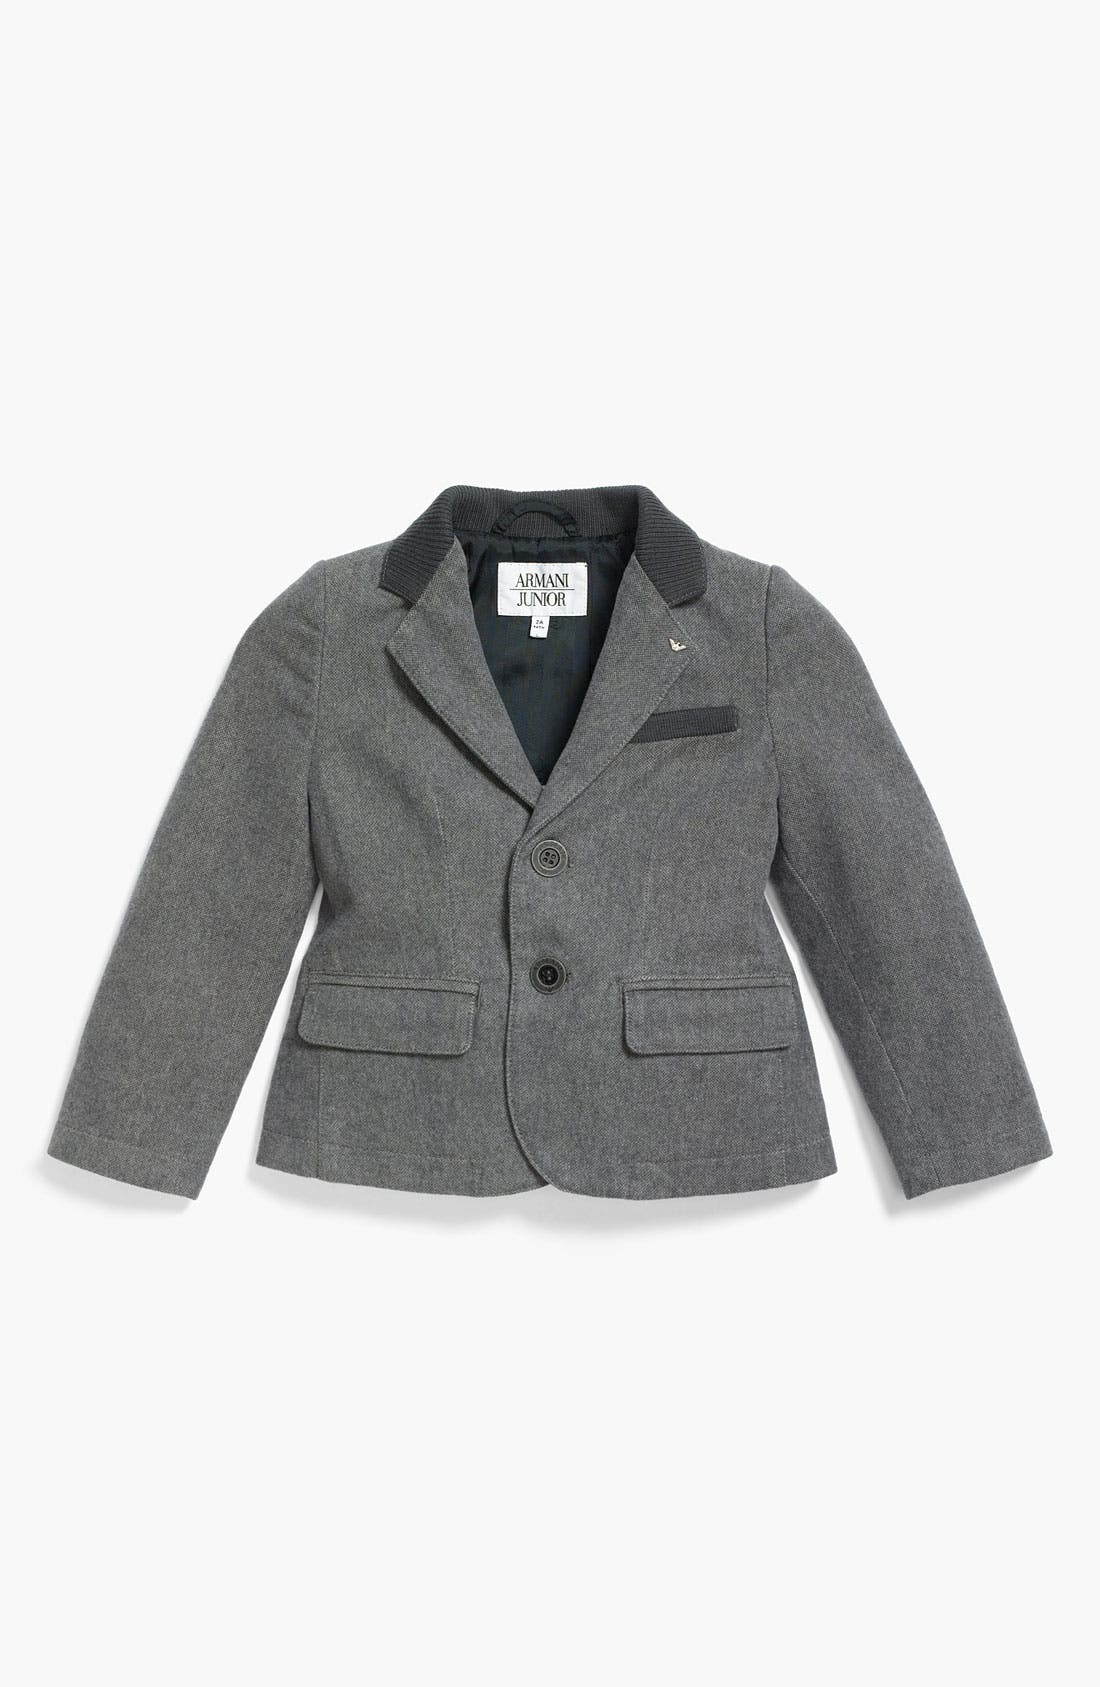 Alternate Image 1 Selected - Armani Junior Two Button Sportcoat (Little Boys)